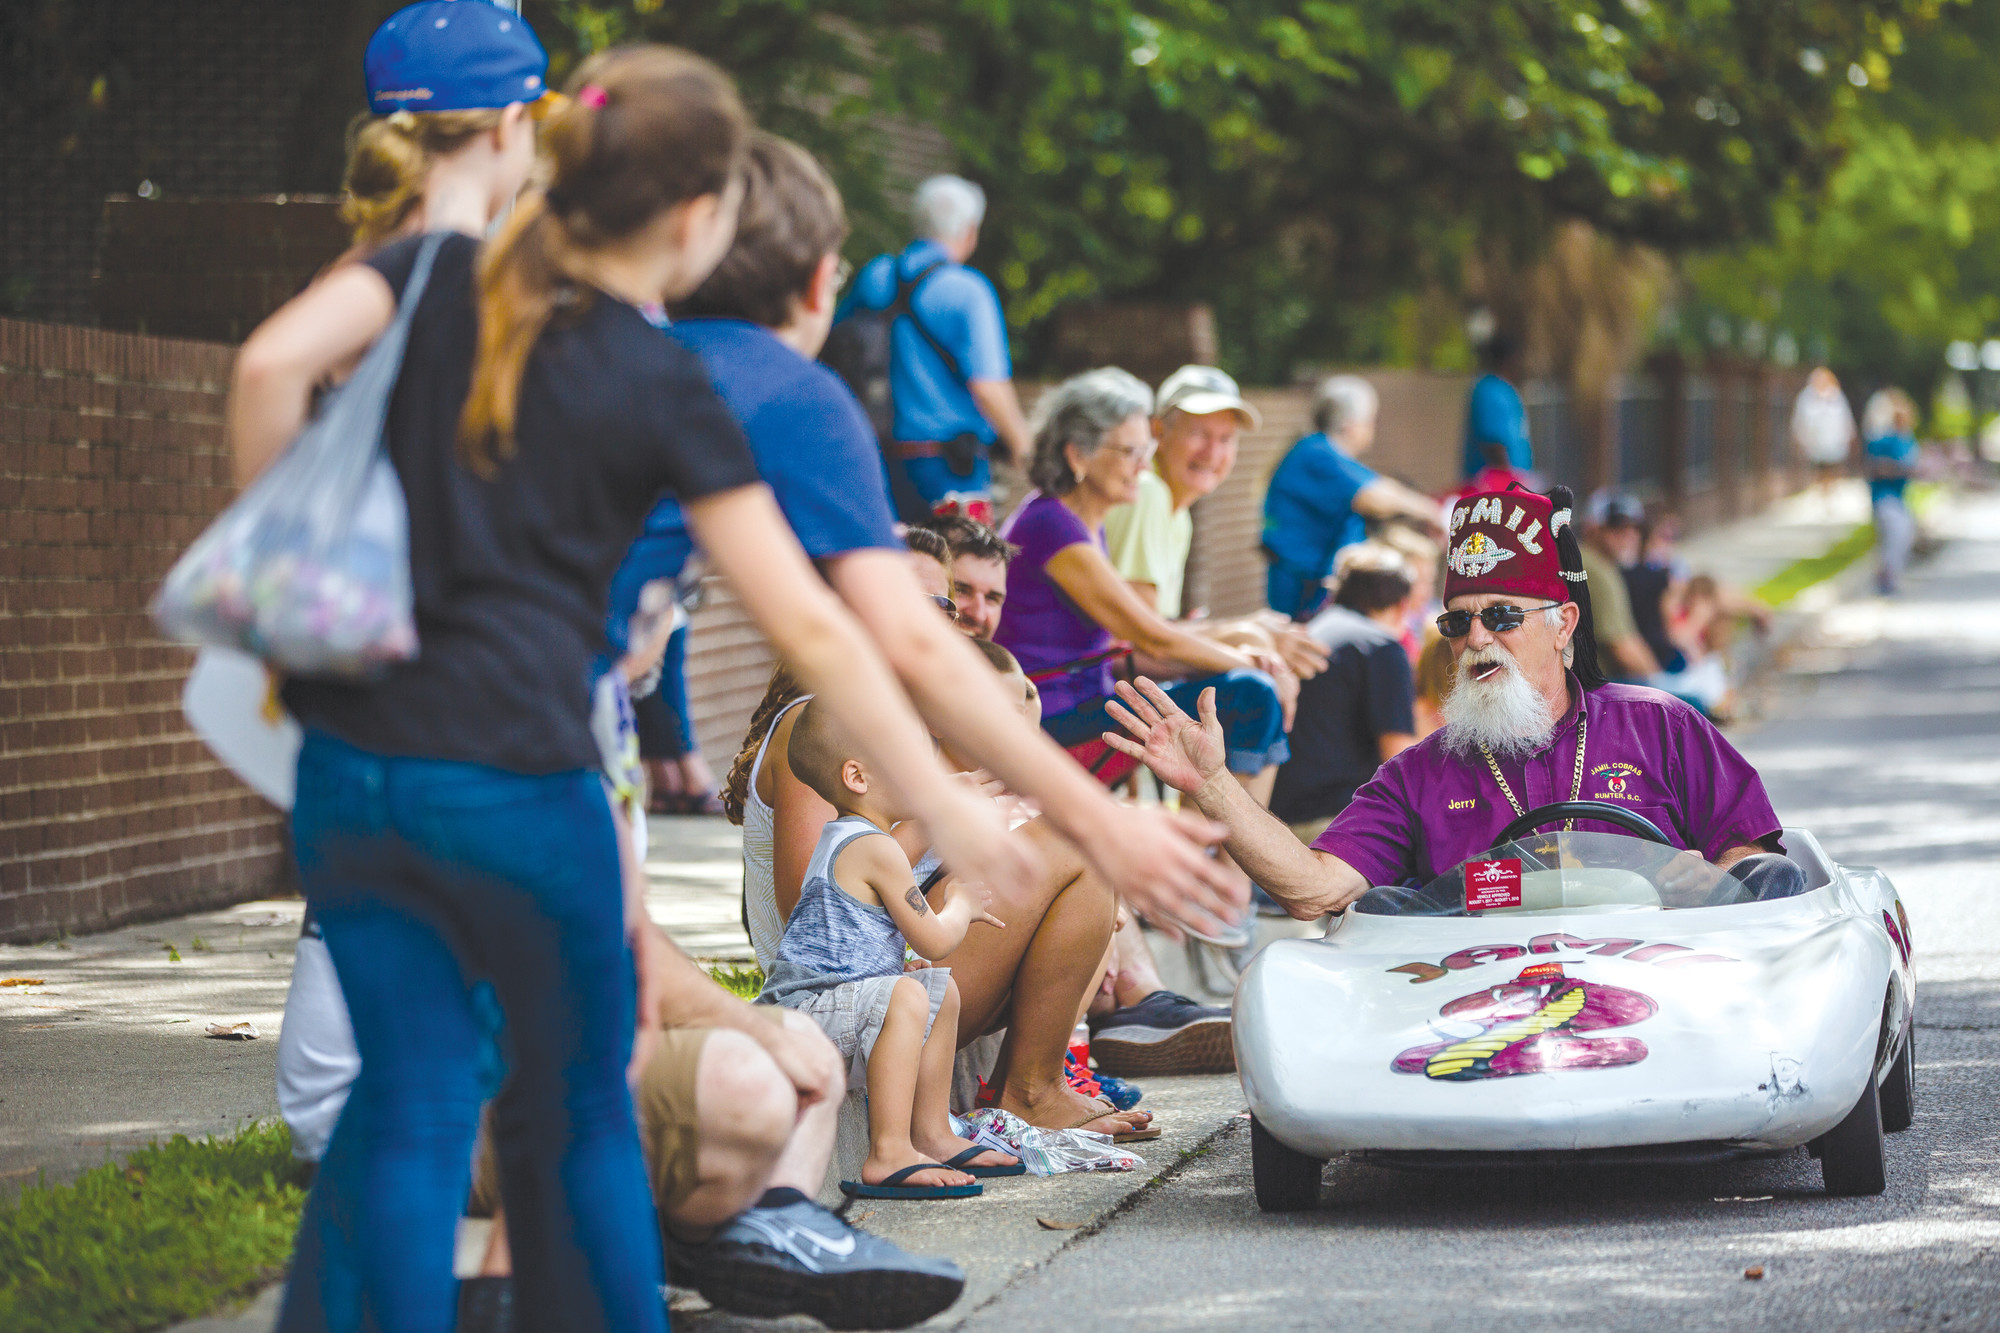 A member of the Shriners gives high fives as he passes in his little car during a past Iris Parade at Swan Lake-Iris Gardens in Sumter.